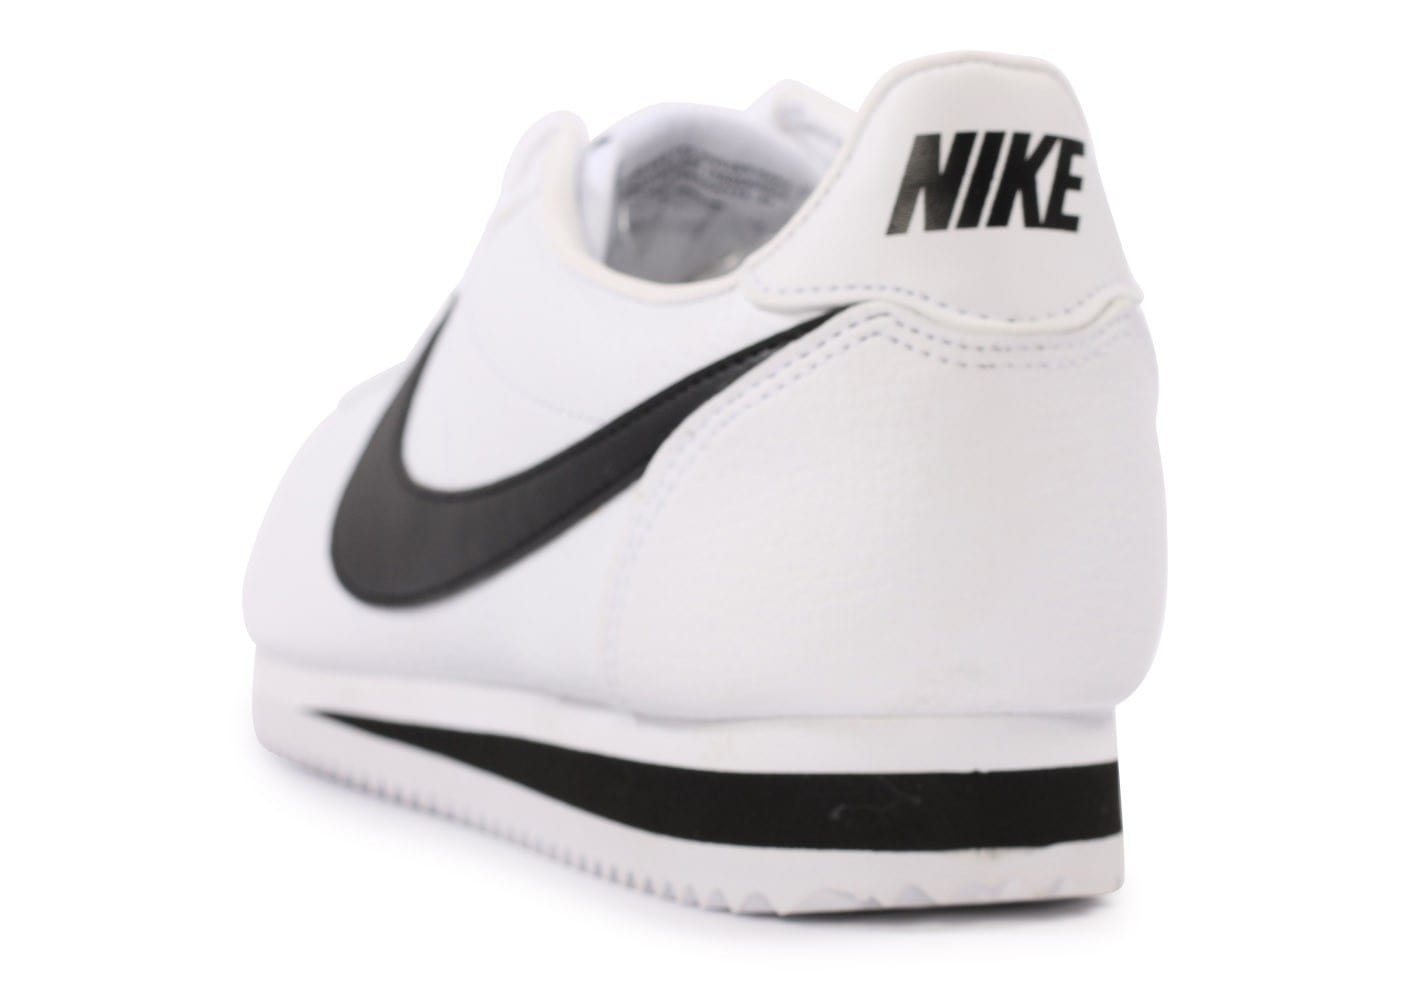 nike air max fly by examen - Nike Cortez Leather blanc noir - Chaussures Homme - Chausport